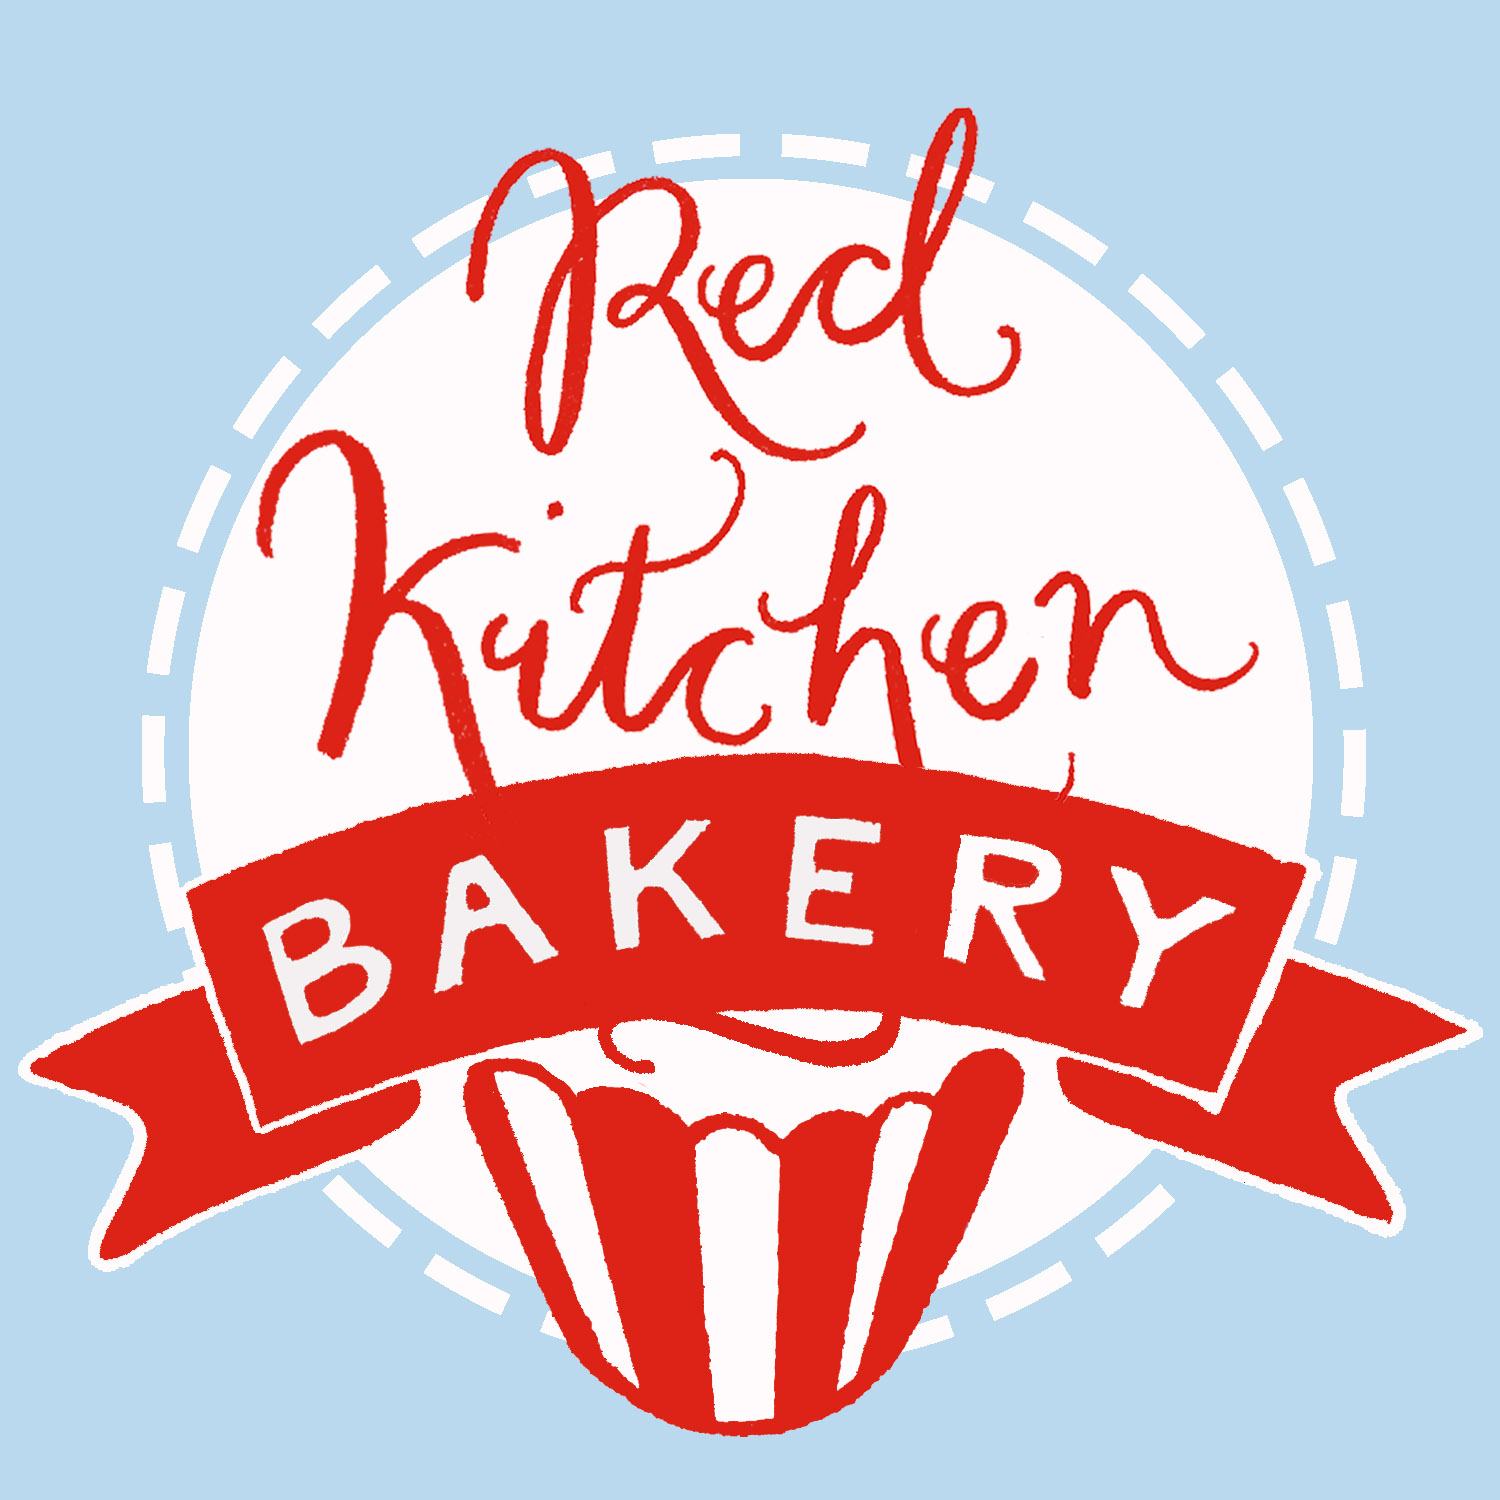 Red Kitchen Bakery